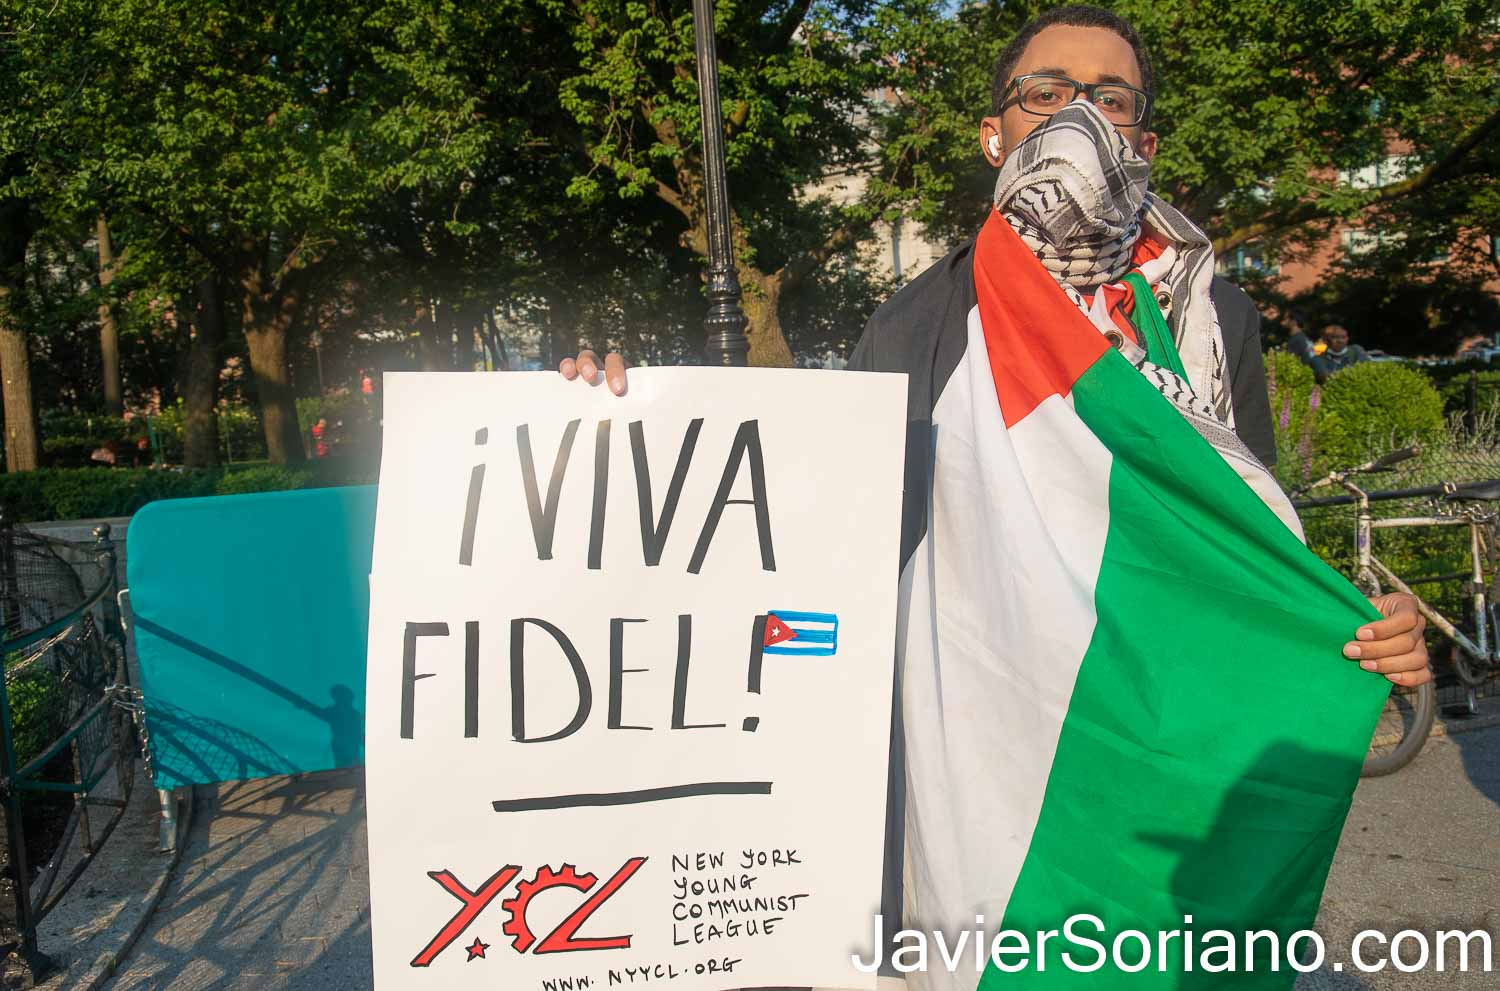 """Thursday, July 15, 2021. Manhattan, New York City - A group of people gathered in Union Square to show solidarity with the Cuban government and the Cuban people. THIS PHOTO: A Palestinian man with the Palestinian flag and a sign that reads, """"¡Viva Fidel!"""" Photo by Javier Soriano/www.JavierSoriano.com"""